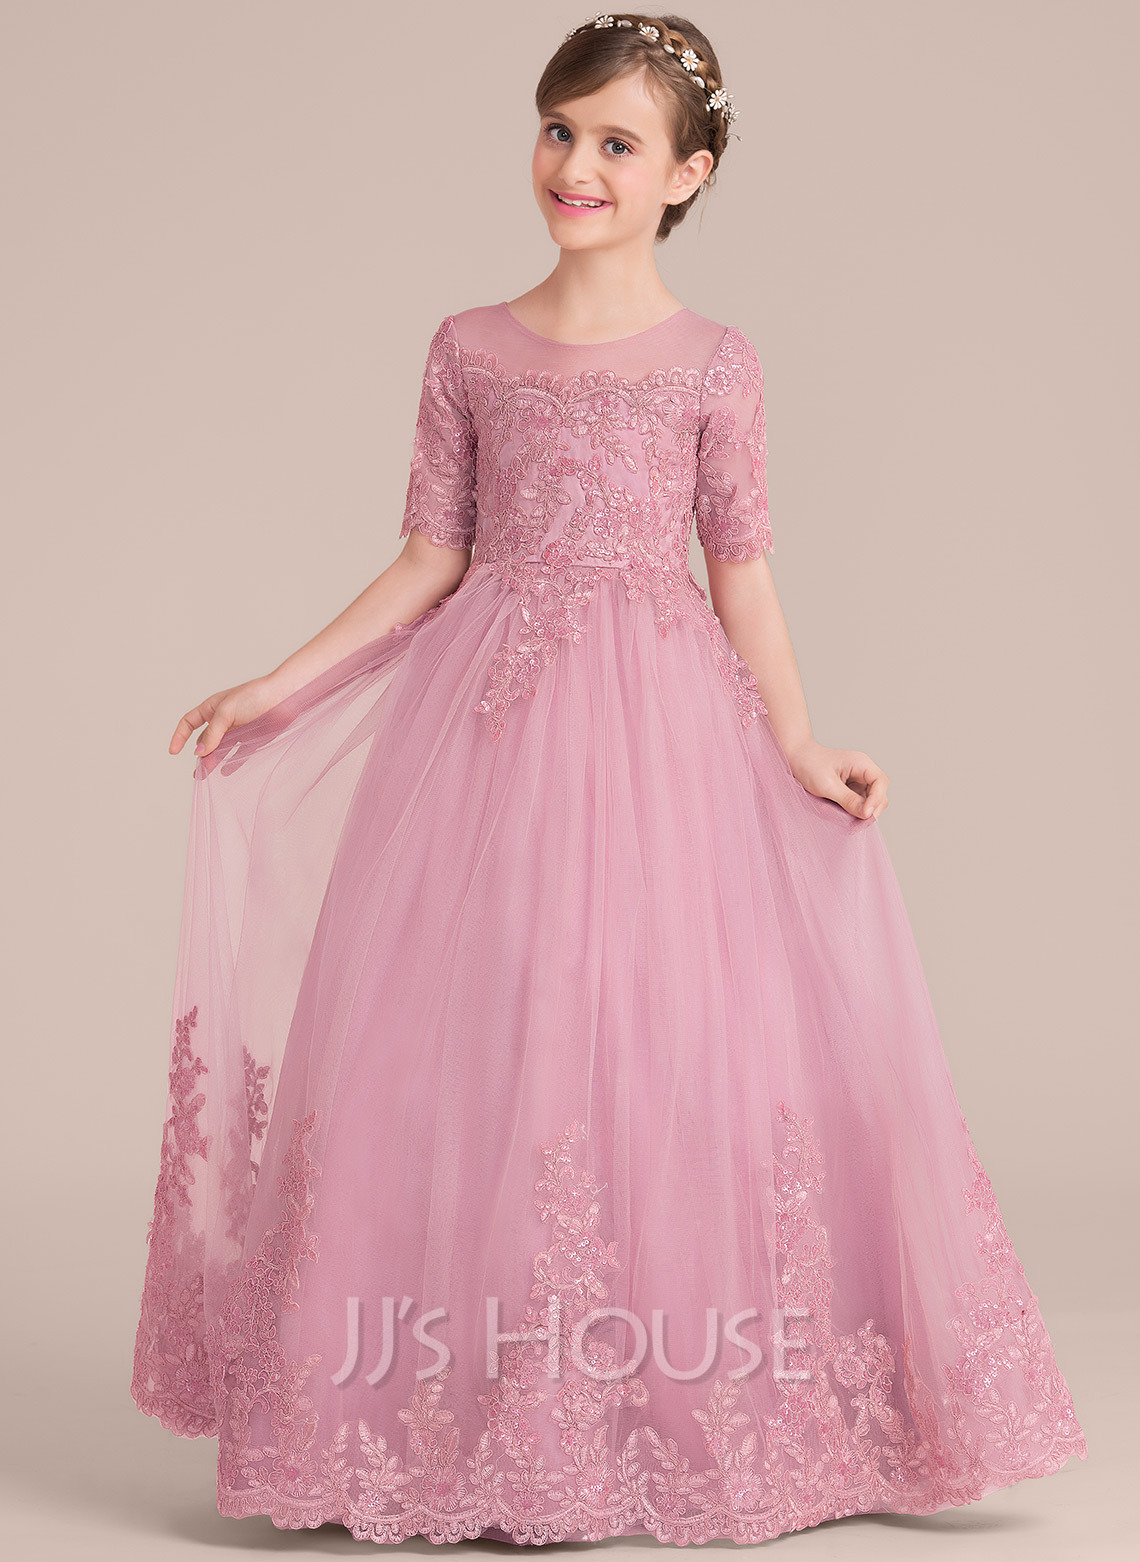 14286c3f0 Ball Gown Floor-length Flower Girl Dress - Tulle/Lace 1/2 Sleeves. Loading  zoom